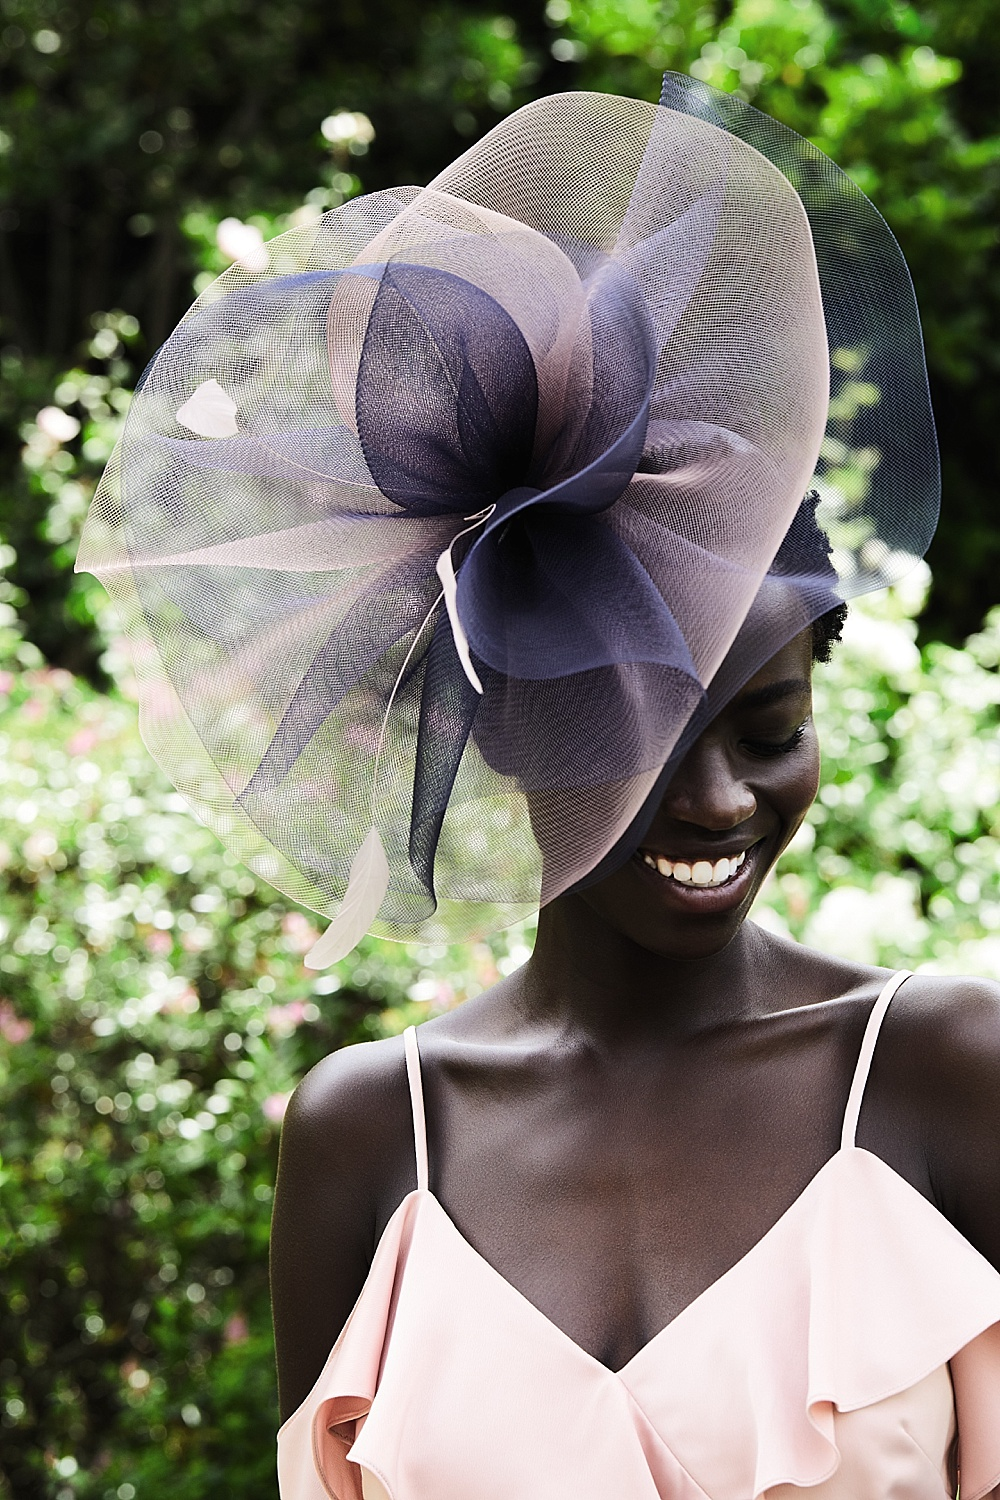 Gorgeous Occasion Wear For Summer Weddings Amp Events